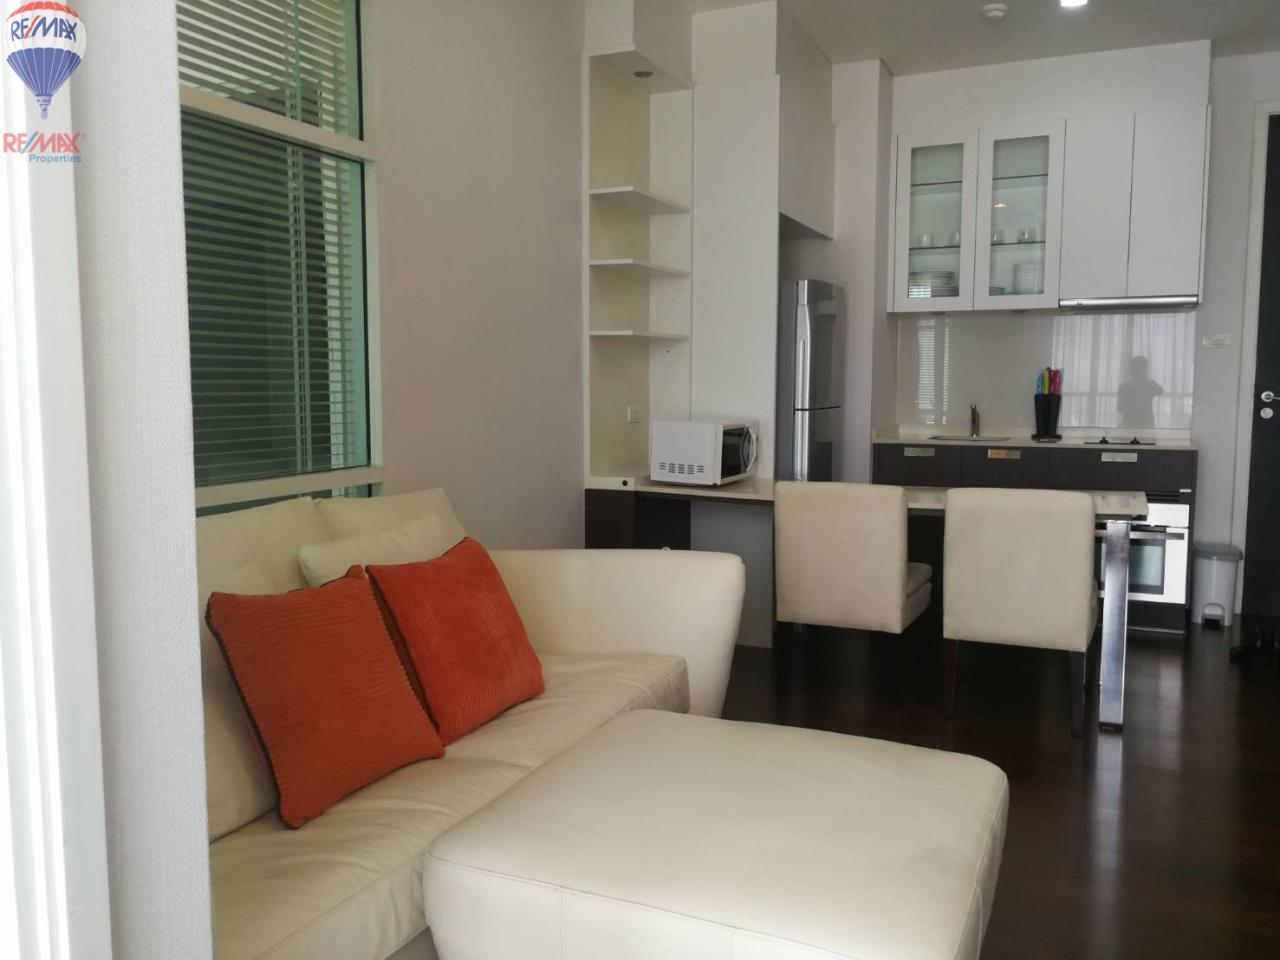 RE/MAX Properties Agency's FOR RENT 1 BED 43 SQM AT IVY THONGLOR 2